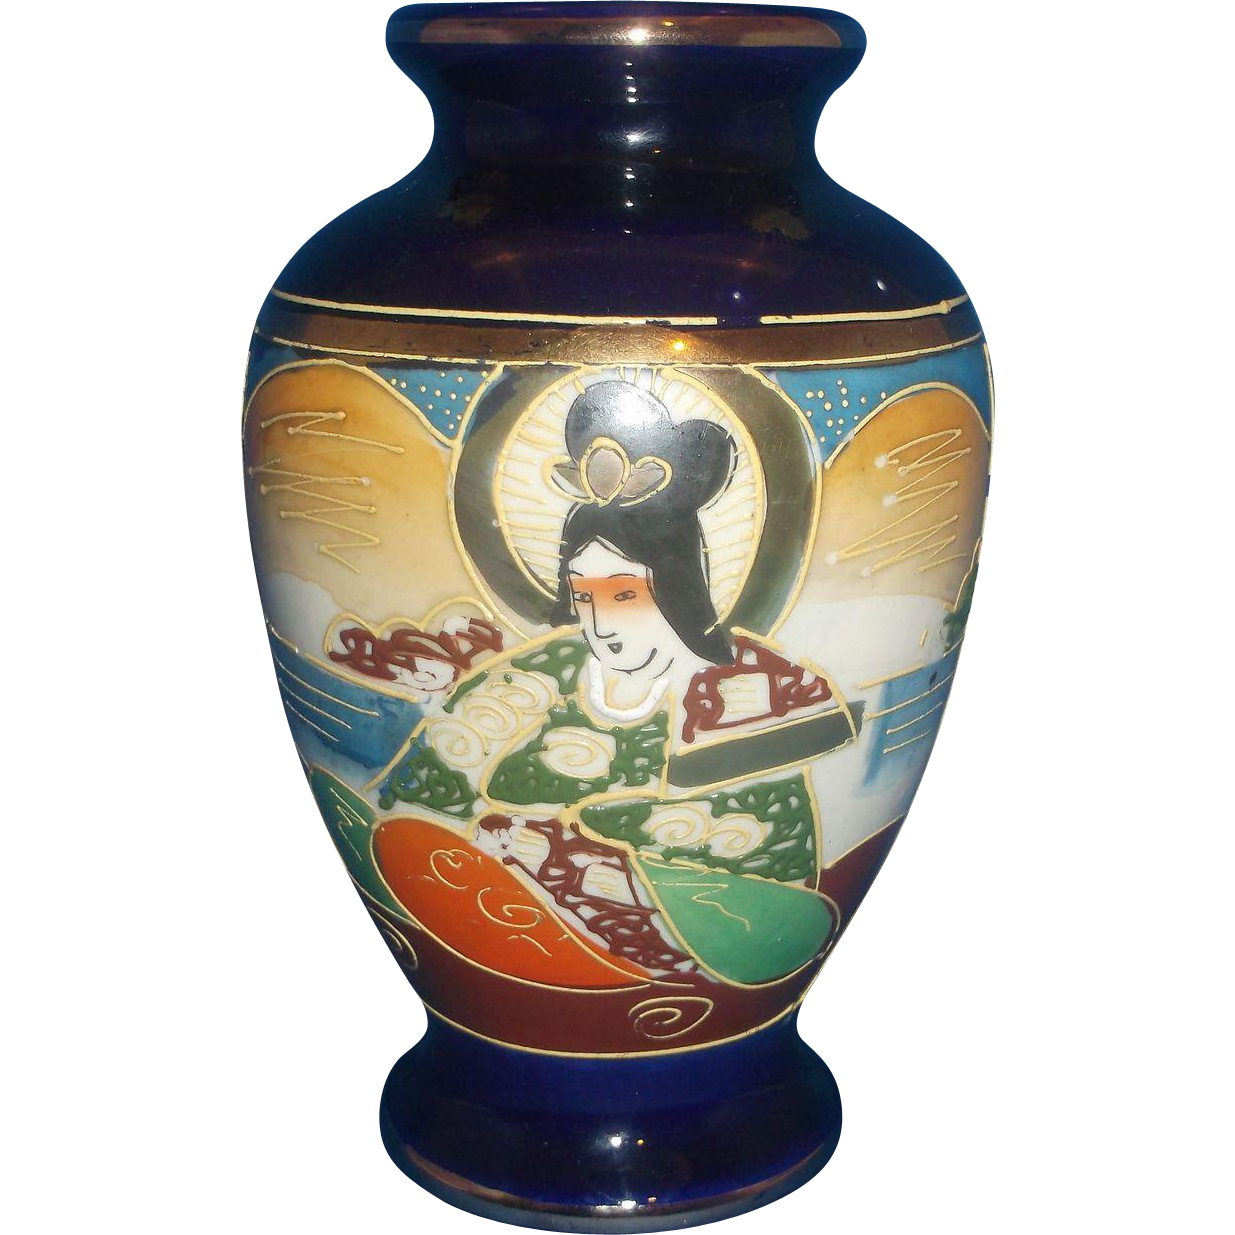 Cobalt Blue Hand Painted Enameled Japan Geisha Vase Cherry Blossom Mark 1920s